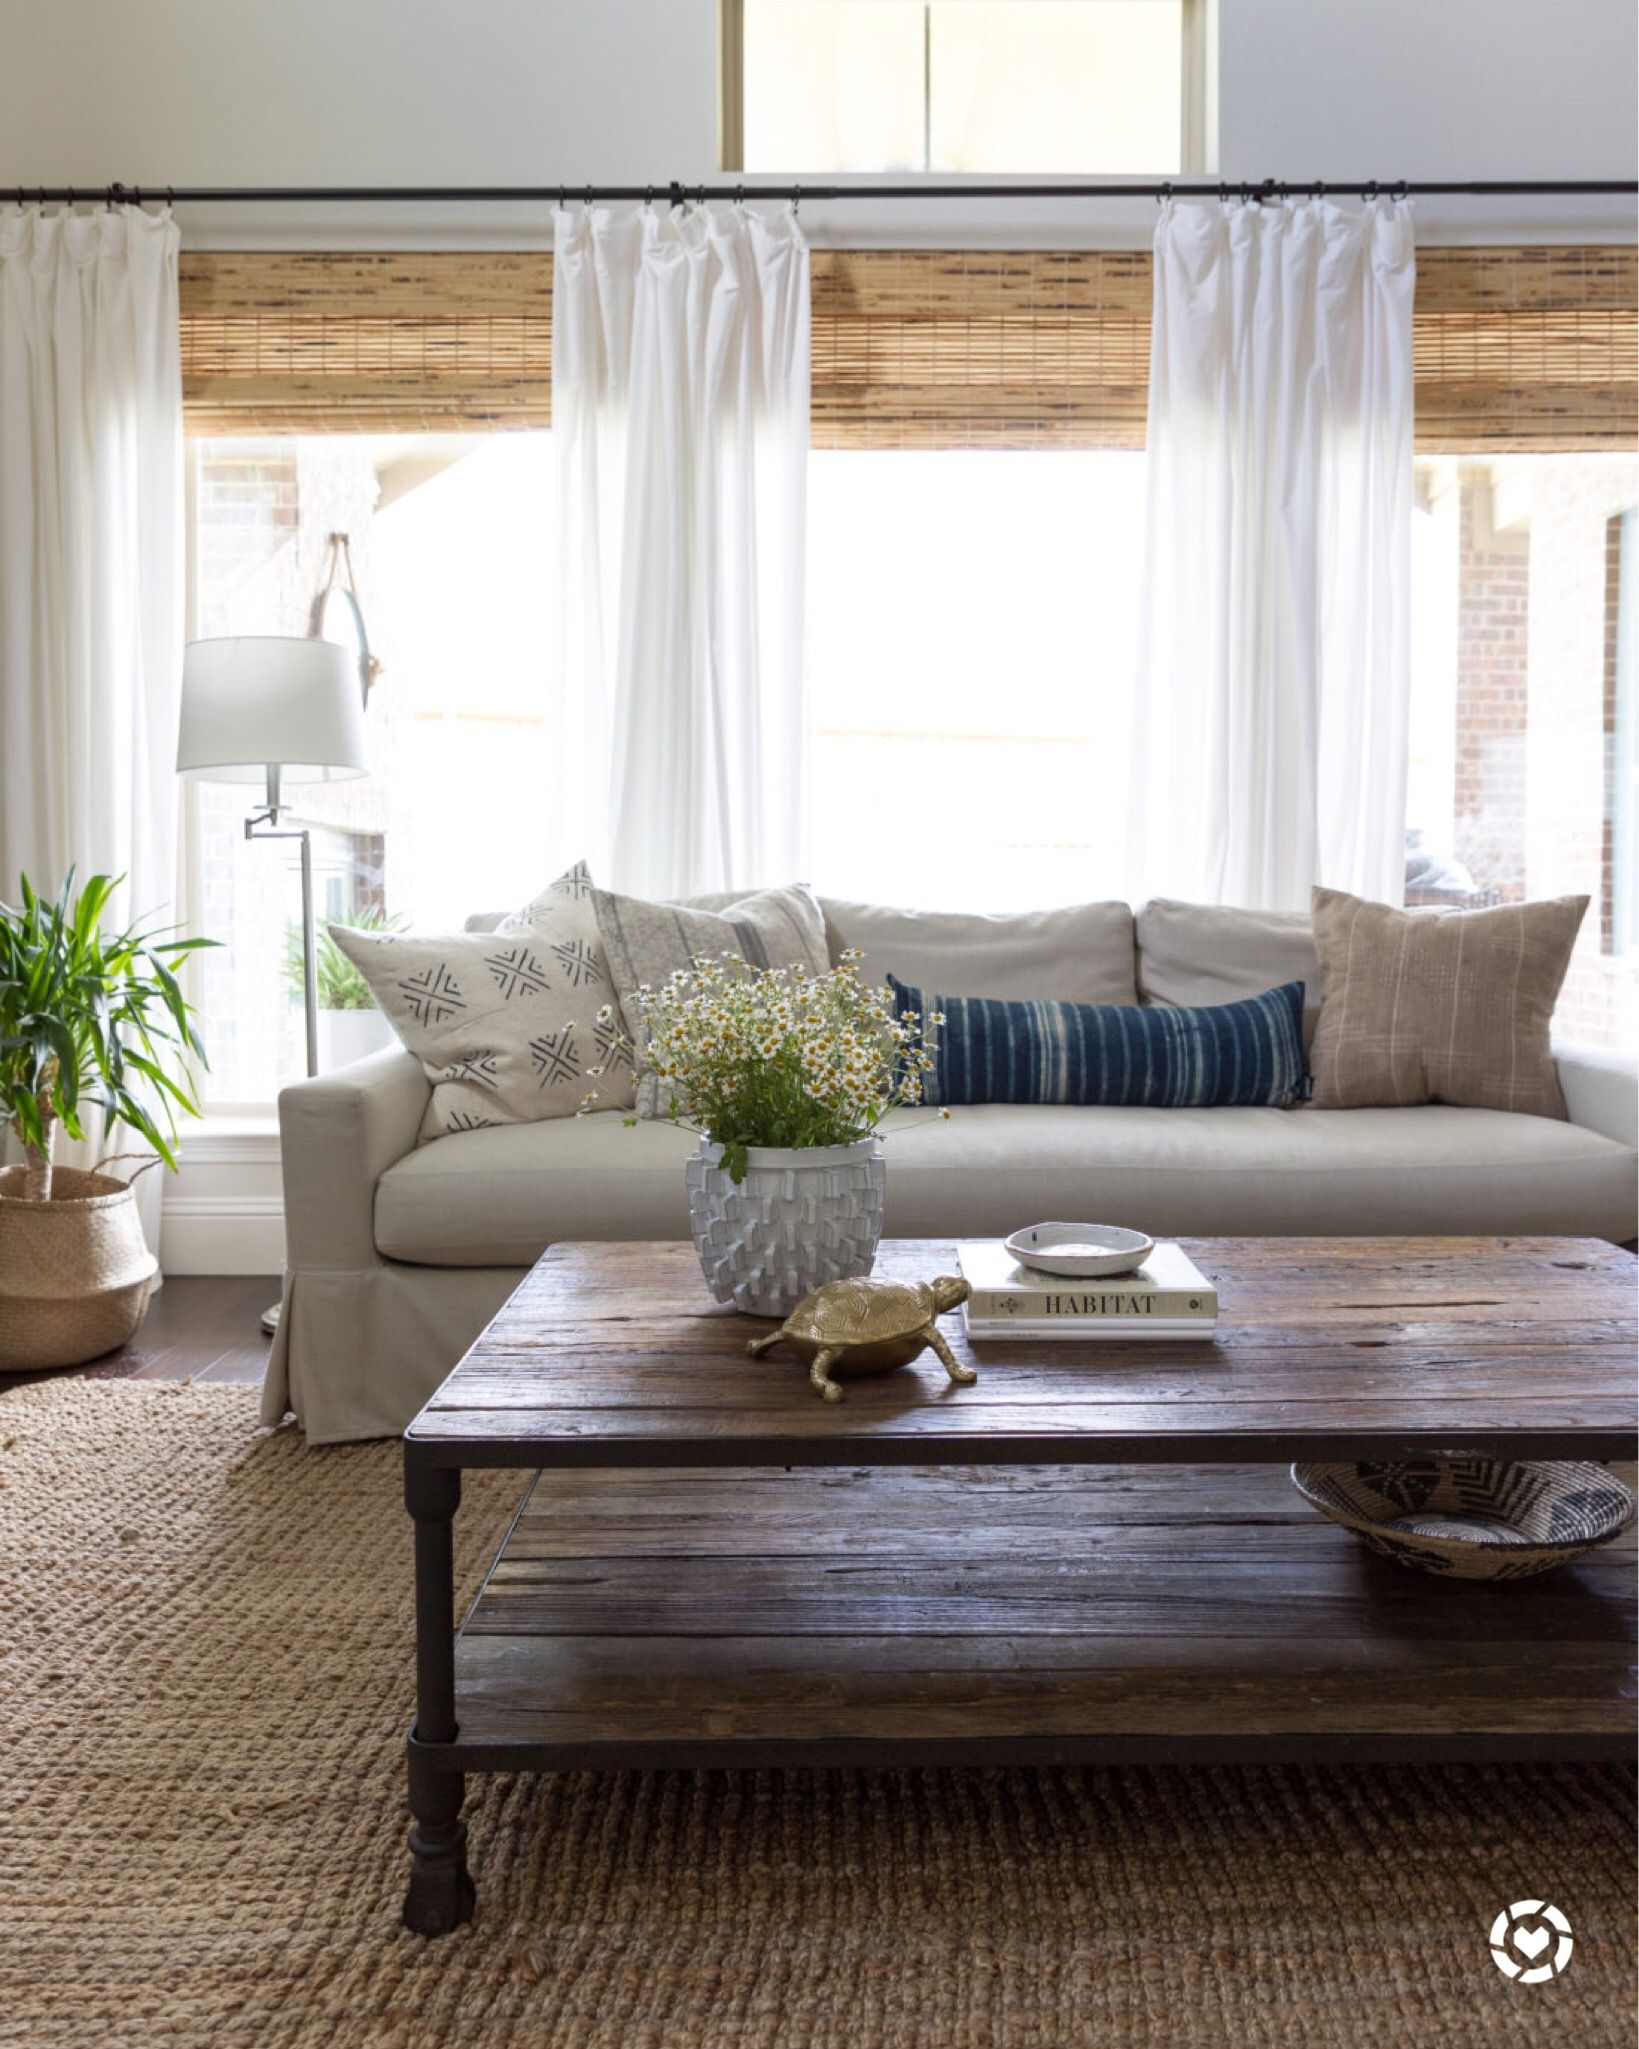 10+ Stunning Pottery Barn Living Room Pictures